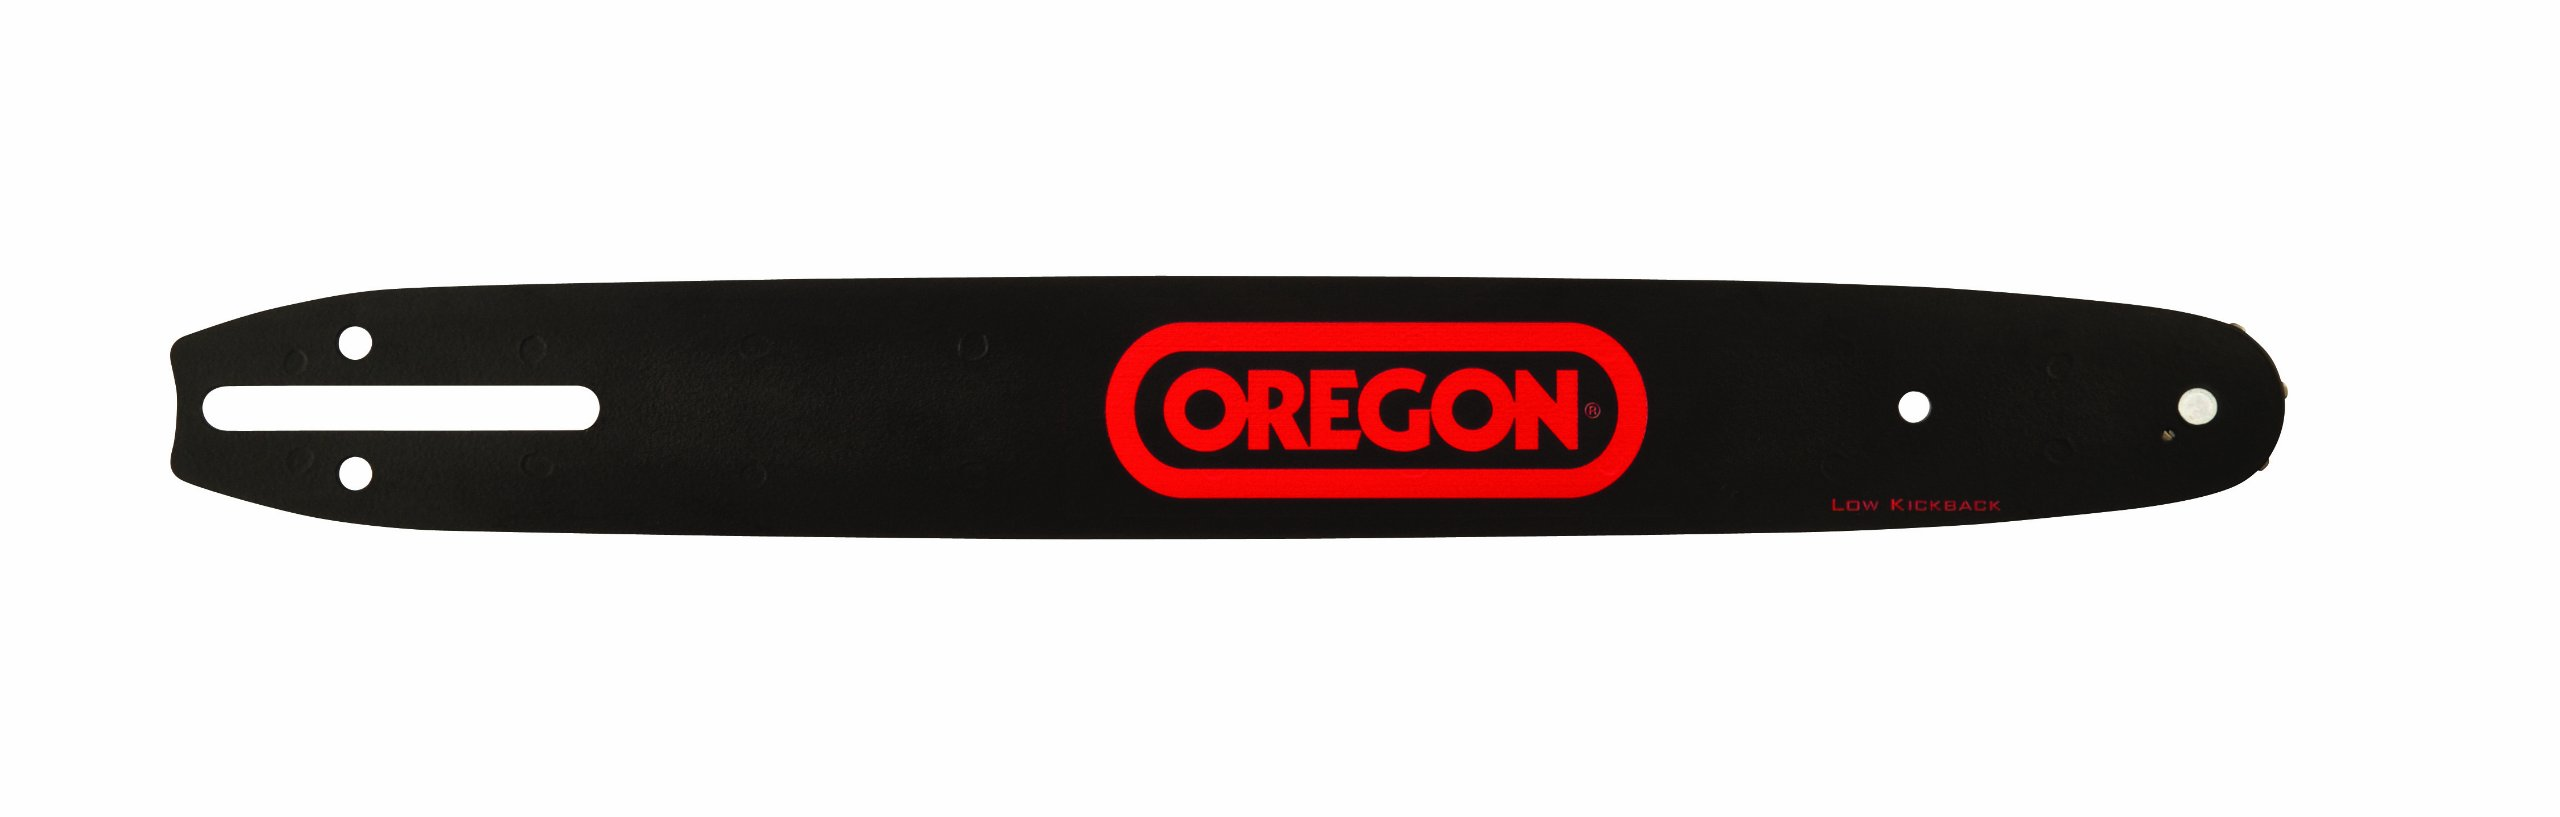 Oregon CORDLESS 40 Volt MAX 548182 14-Inch Replacement Guide Bar for CS250